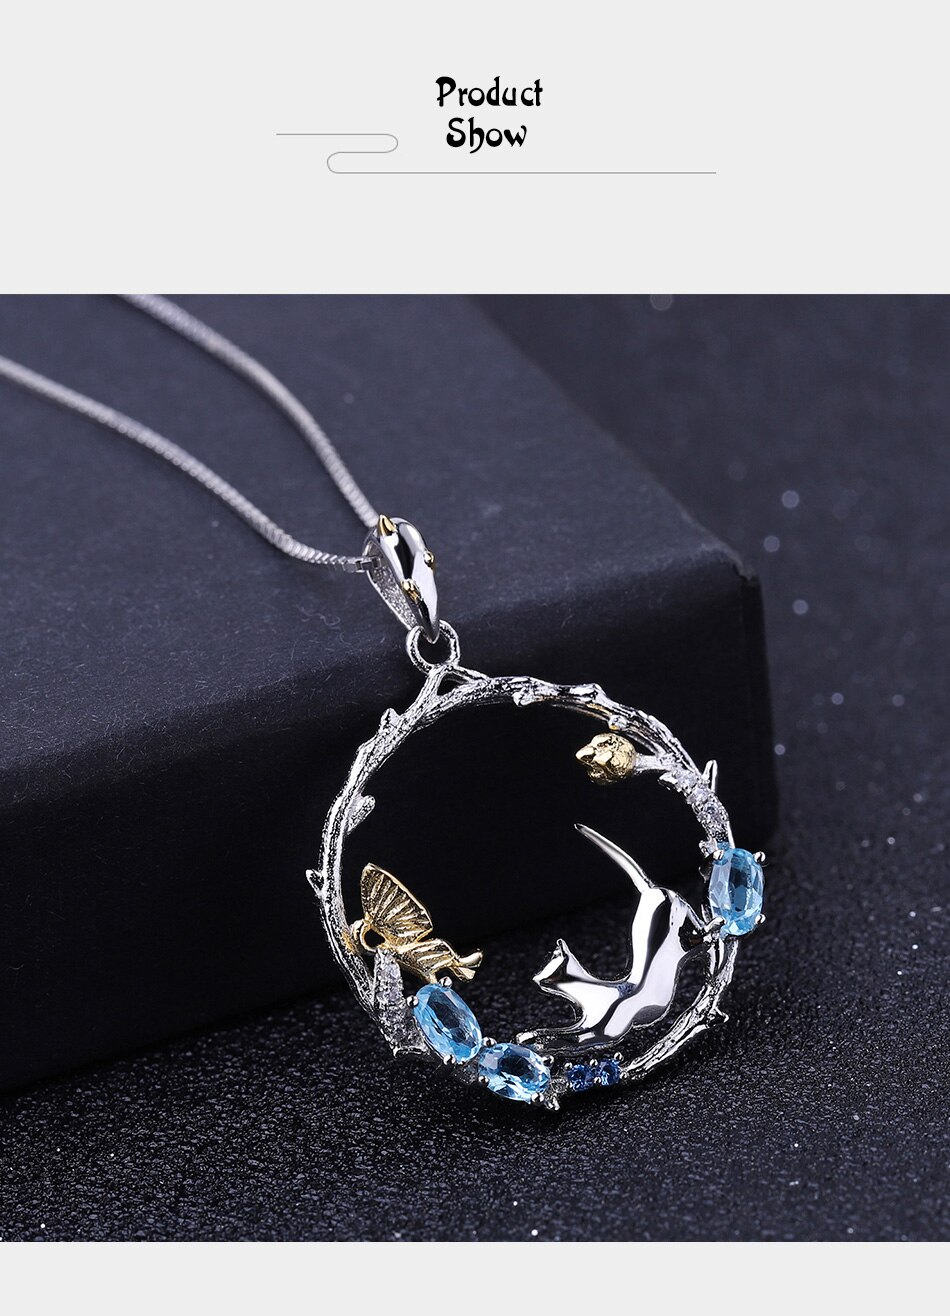 GEM'S BALLET 0.81Ct Natural Swiss Blue Topaz 925 Sterling Silver Round Cat & butterfly Flower Pendant Necklace for Women Jewelry